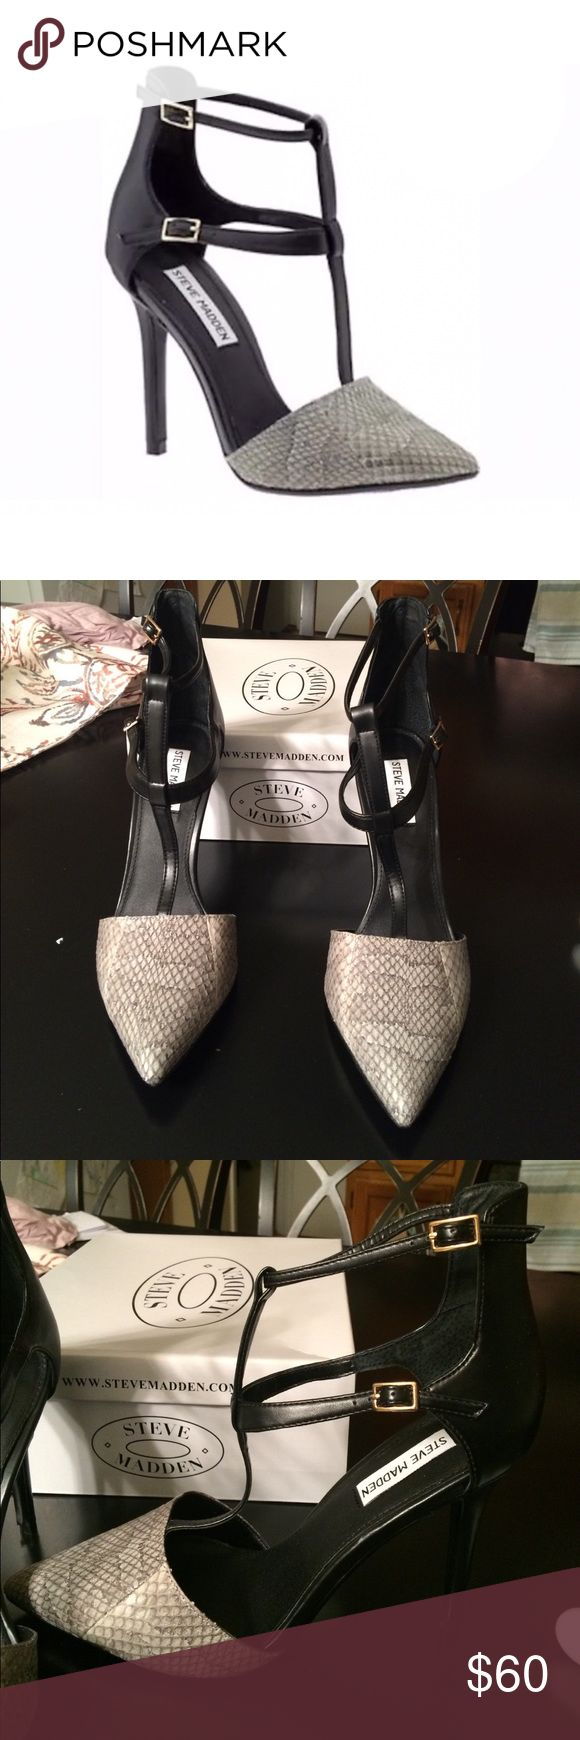 """Steve Madden Strappy buckle heel Super chick Strappy buckle Steve Madden heels. Shake skin toe that is off white and dark gray in color. Buckles are gold. Leather upper and rubber/plastic outsole. Heel Hight is just a touch over 4"""". Brand new. Steve Madden Shoes Heels"""